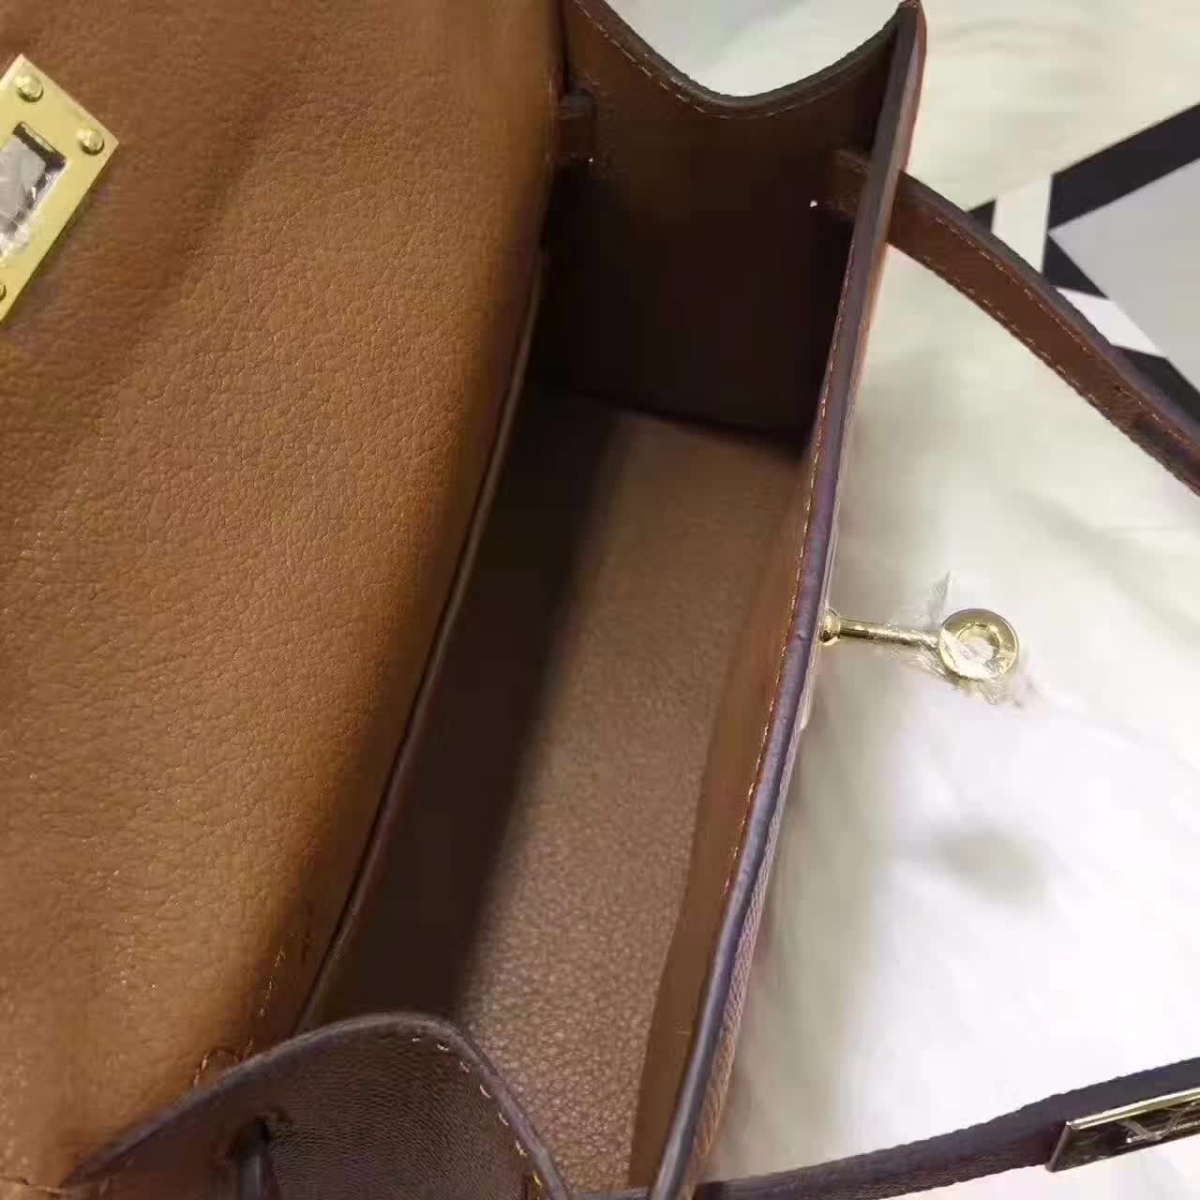 Hermes Mini Kelly Bag hhem588_7